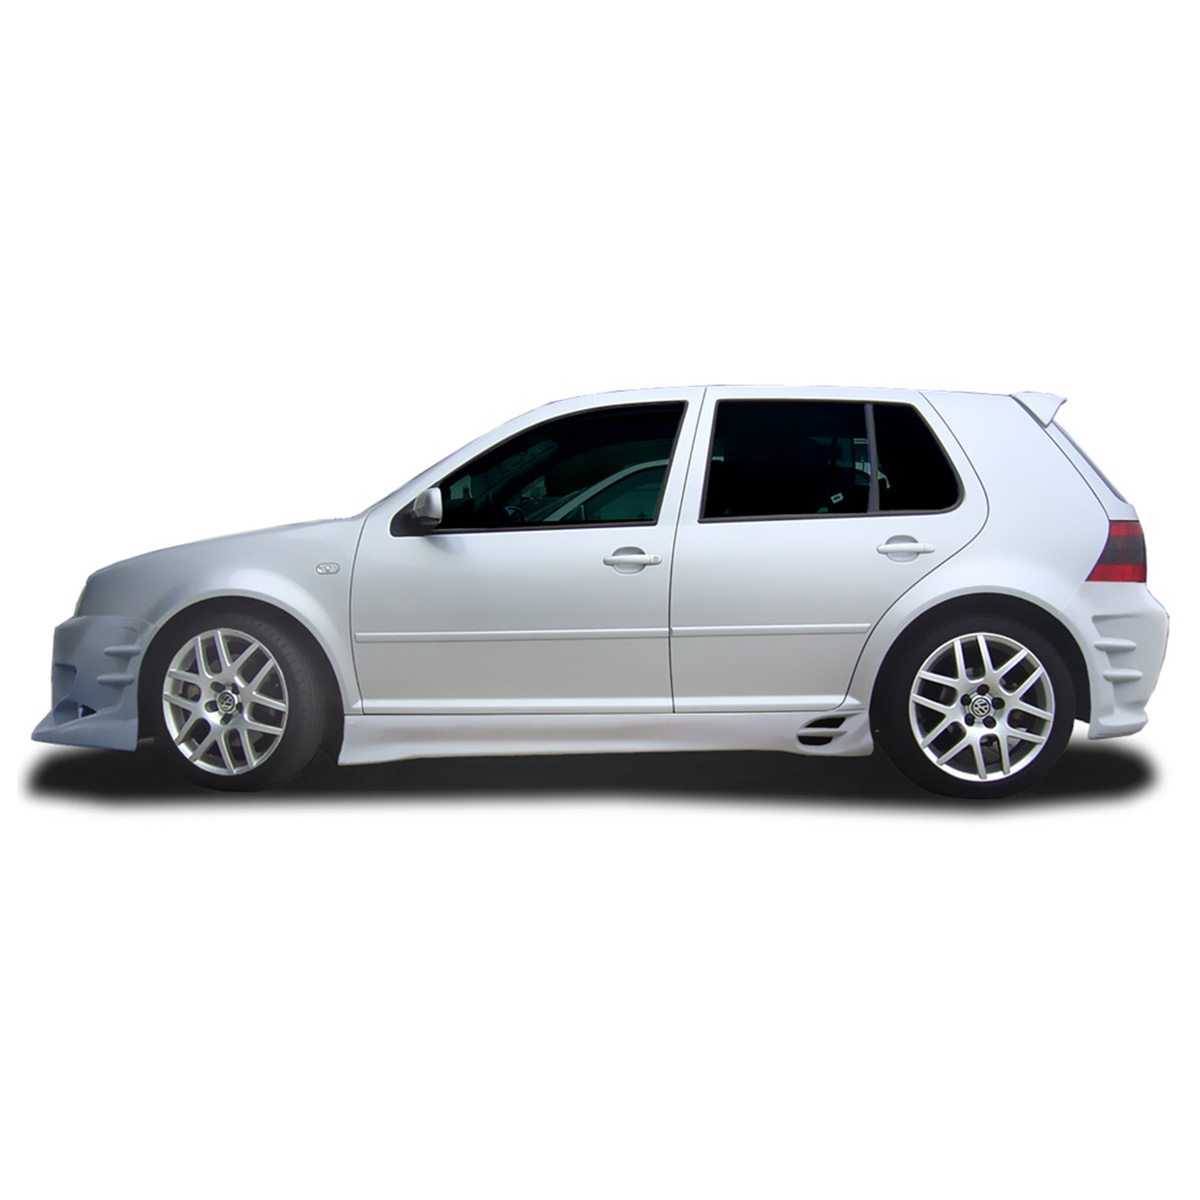 VW-Golf-IV-Swat-EBU0253